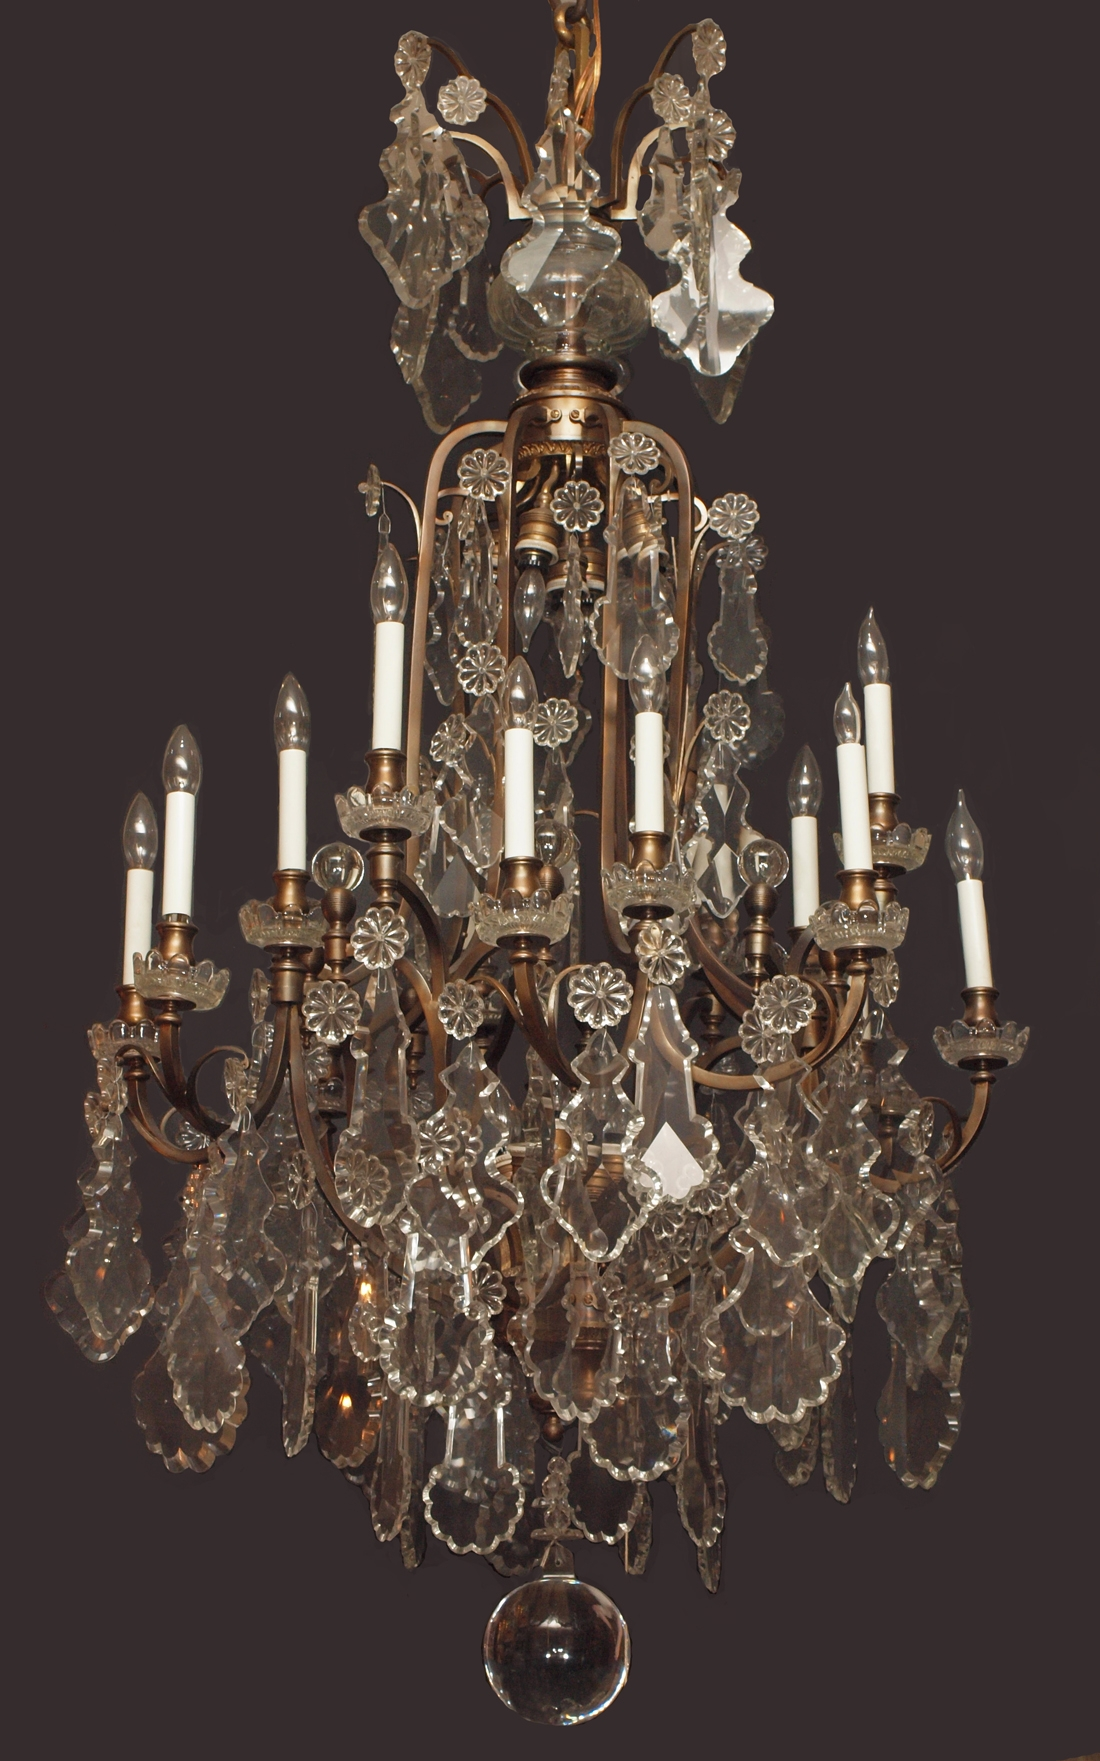 Chandeliers Baccarat Crystal Intended For Vintage French Chandeliers (#5 of 12)